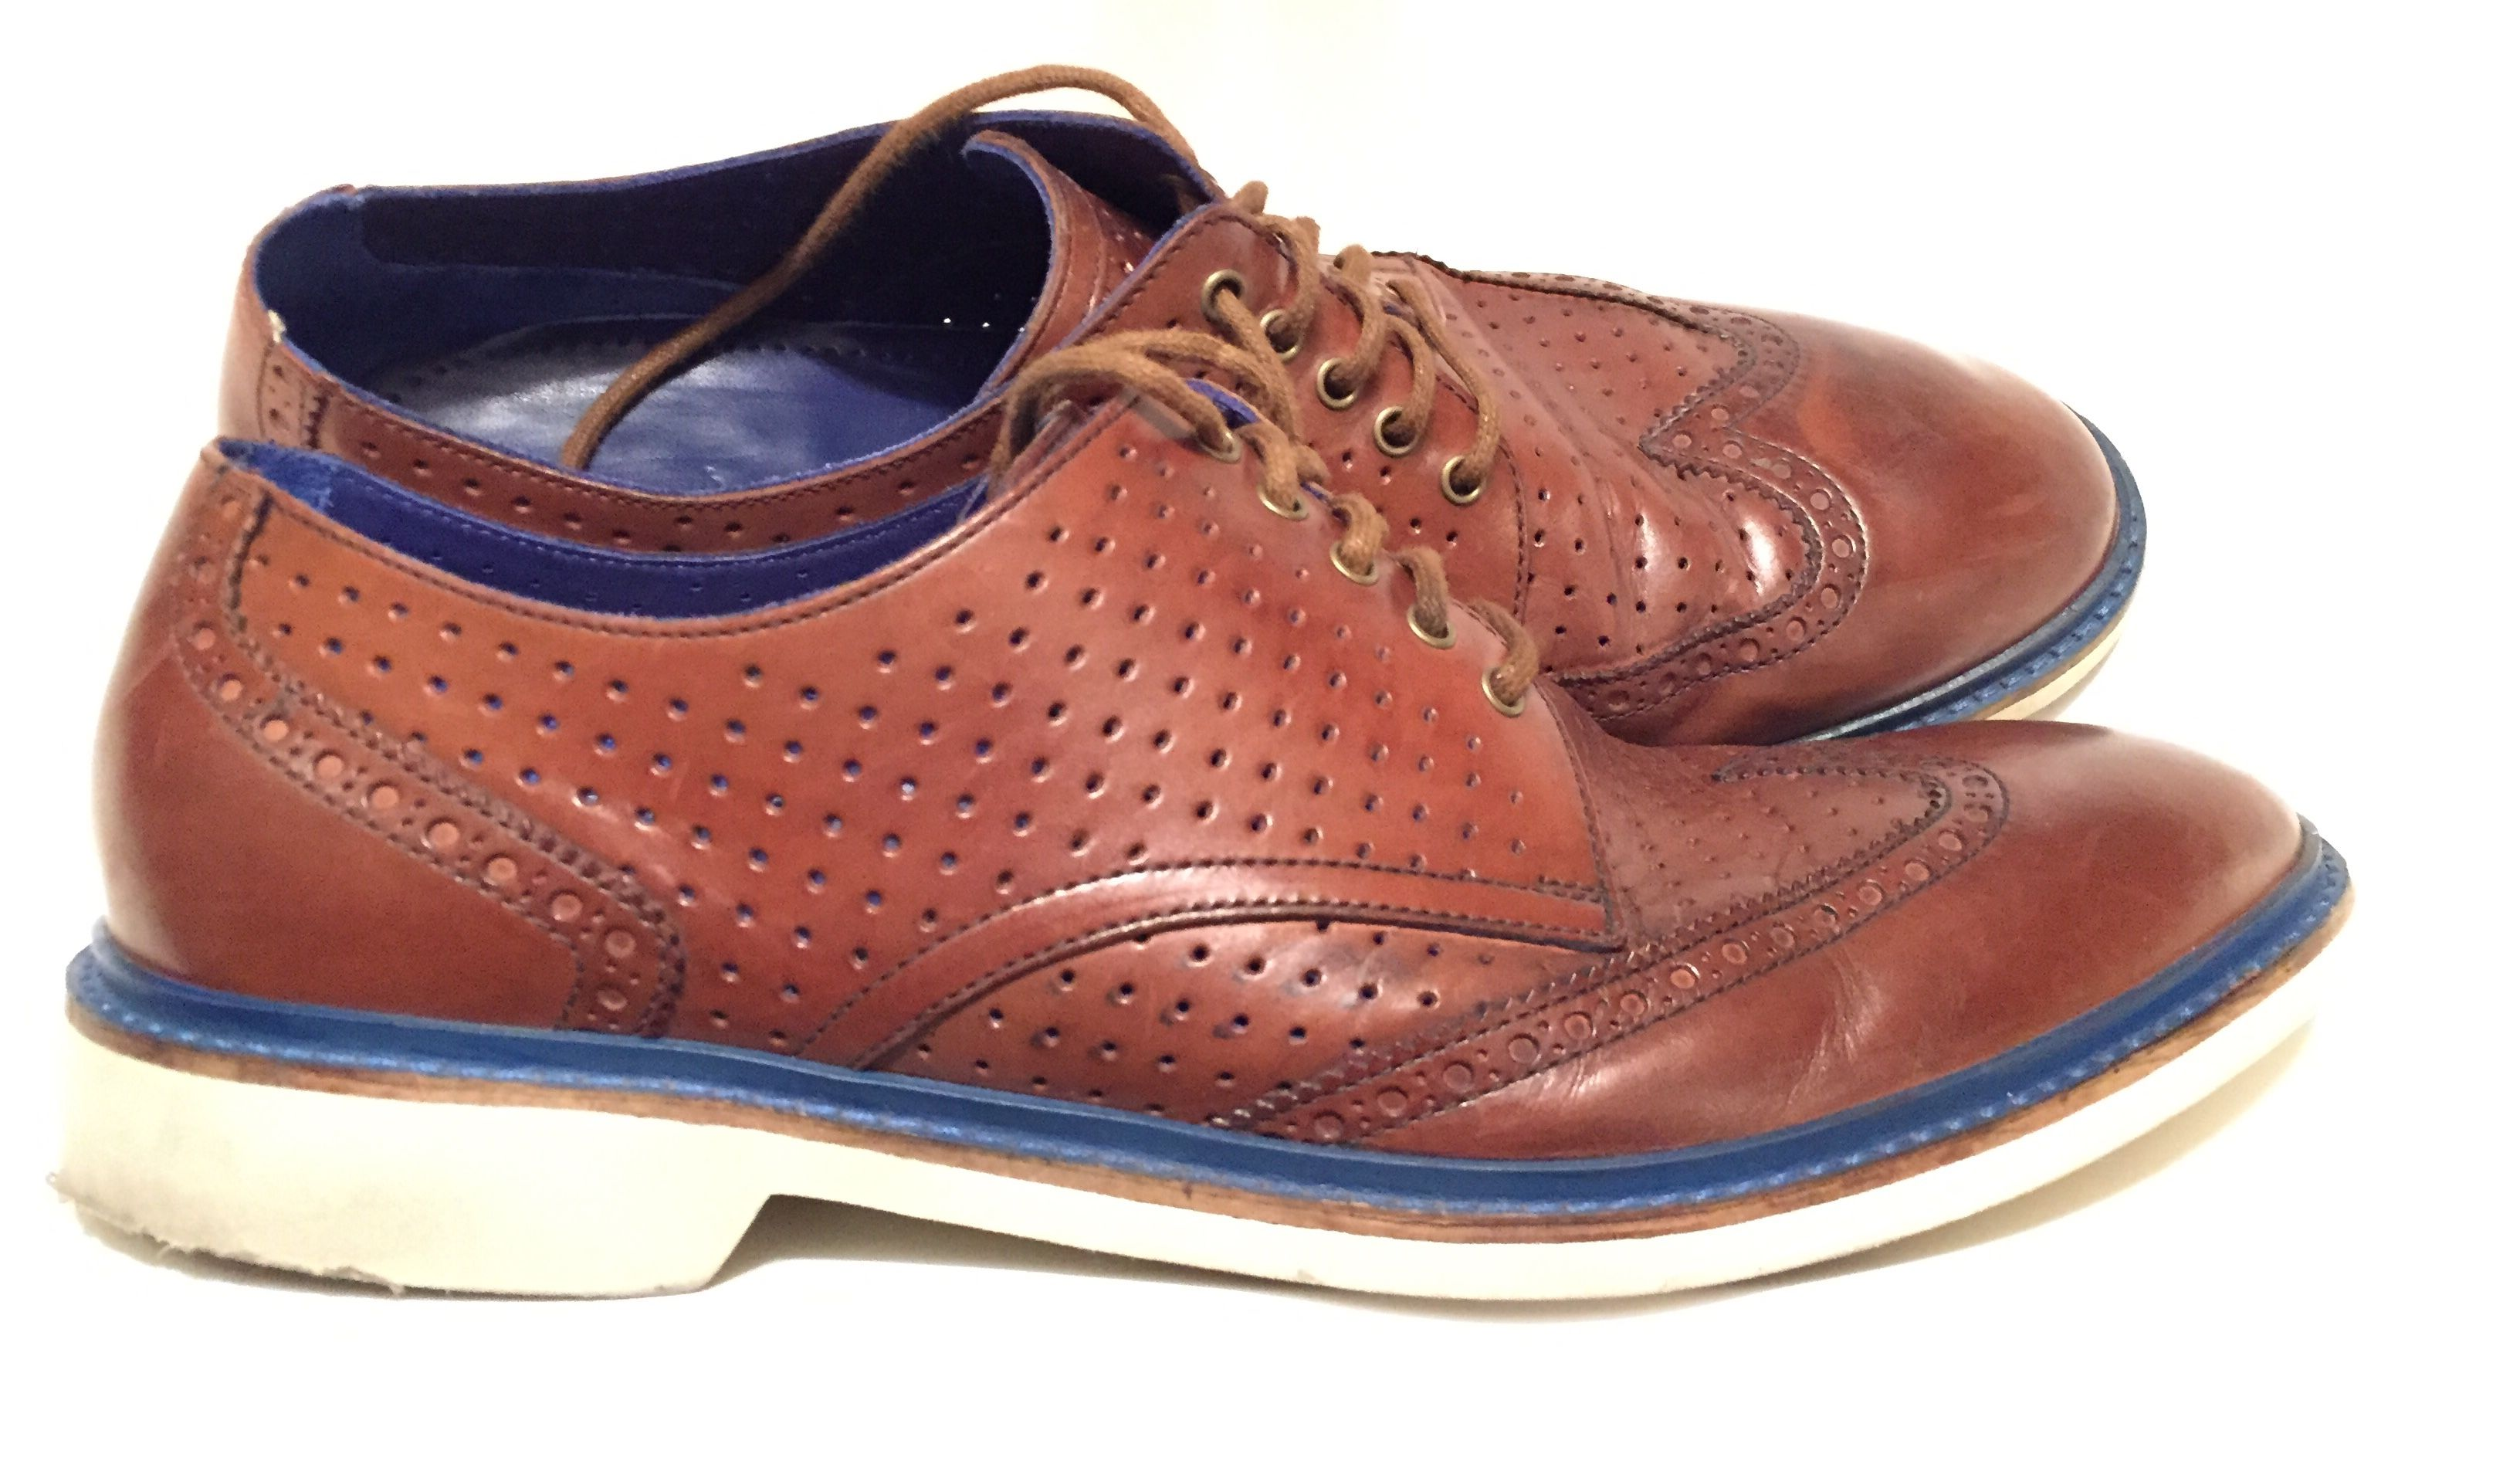 Cole haan brown perforated dress shoes men oxford shoes